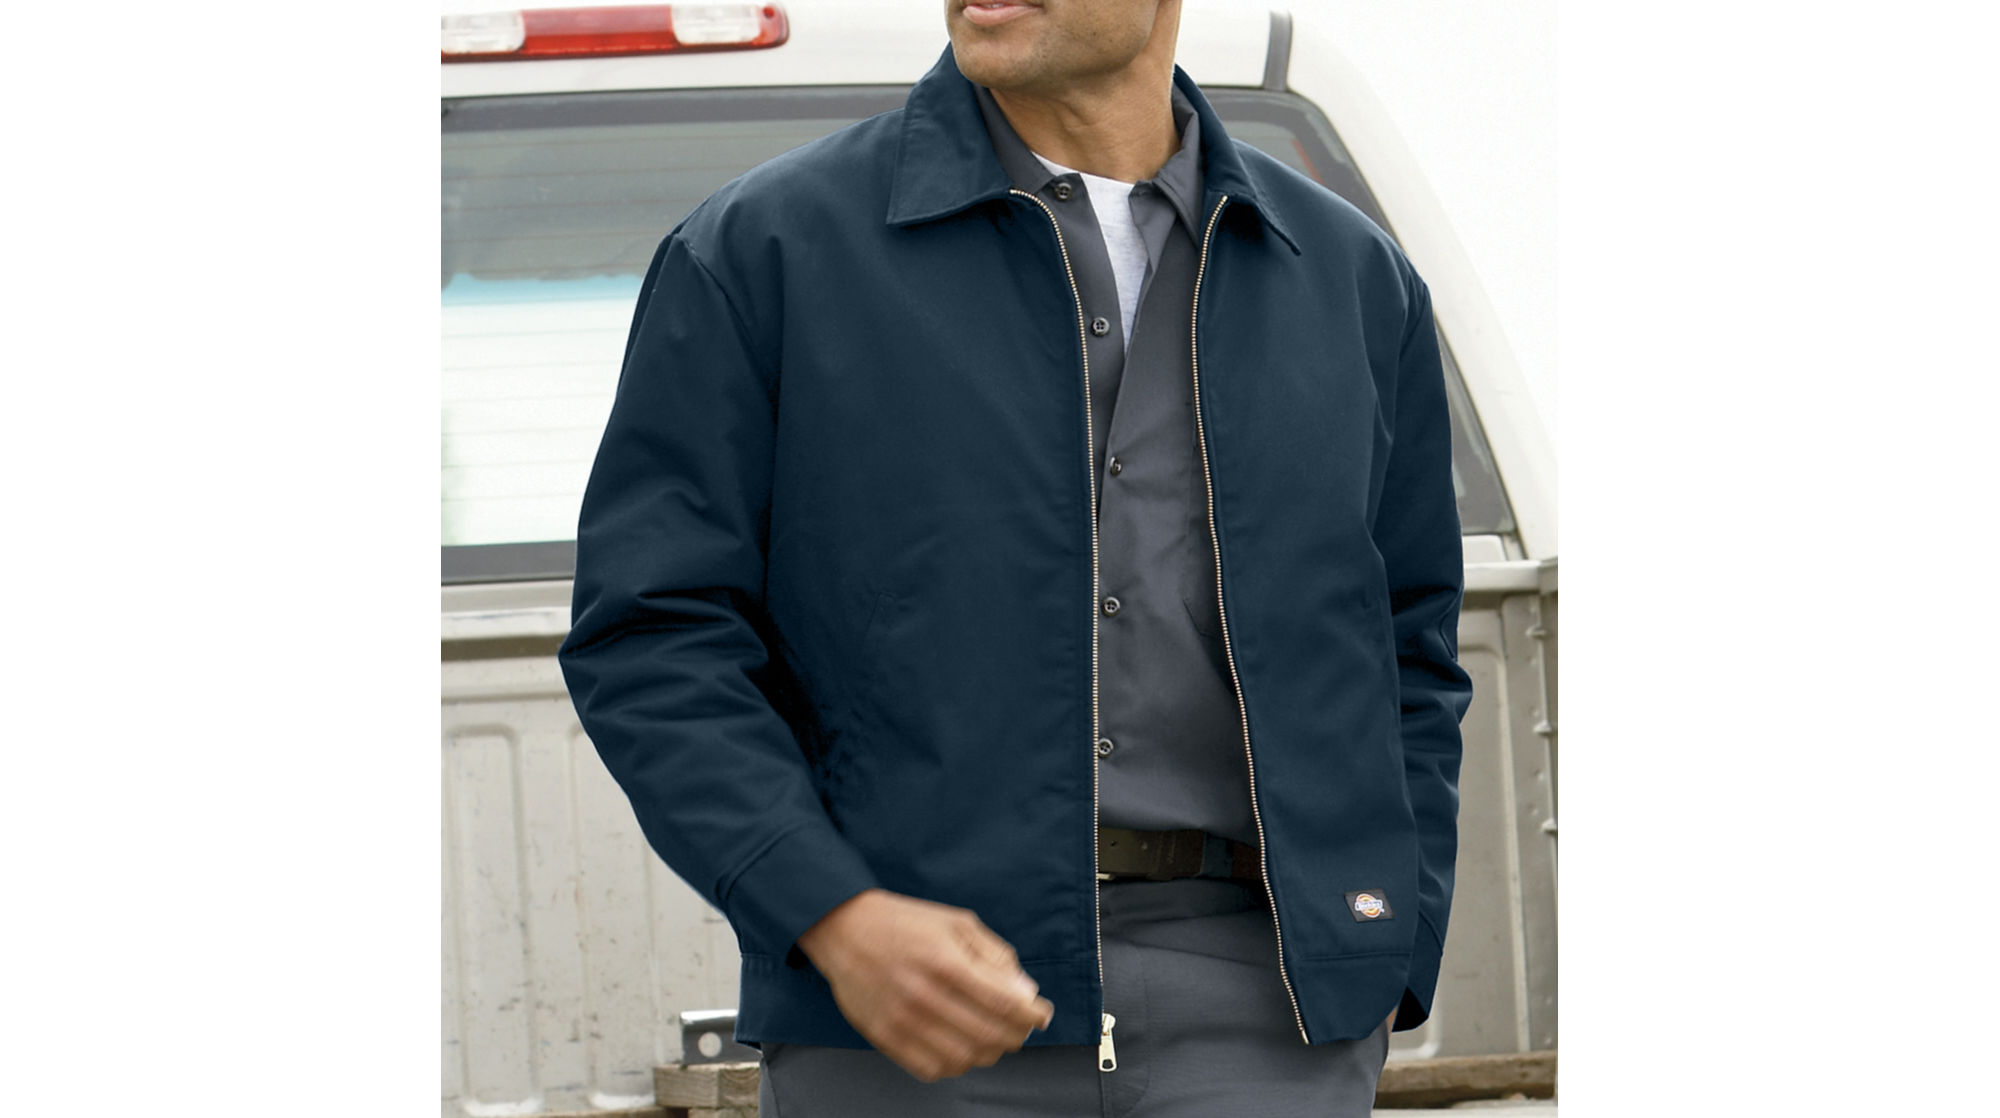 Lightweight Work Jacket - My Jacket